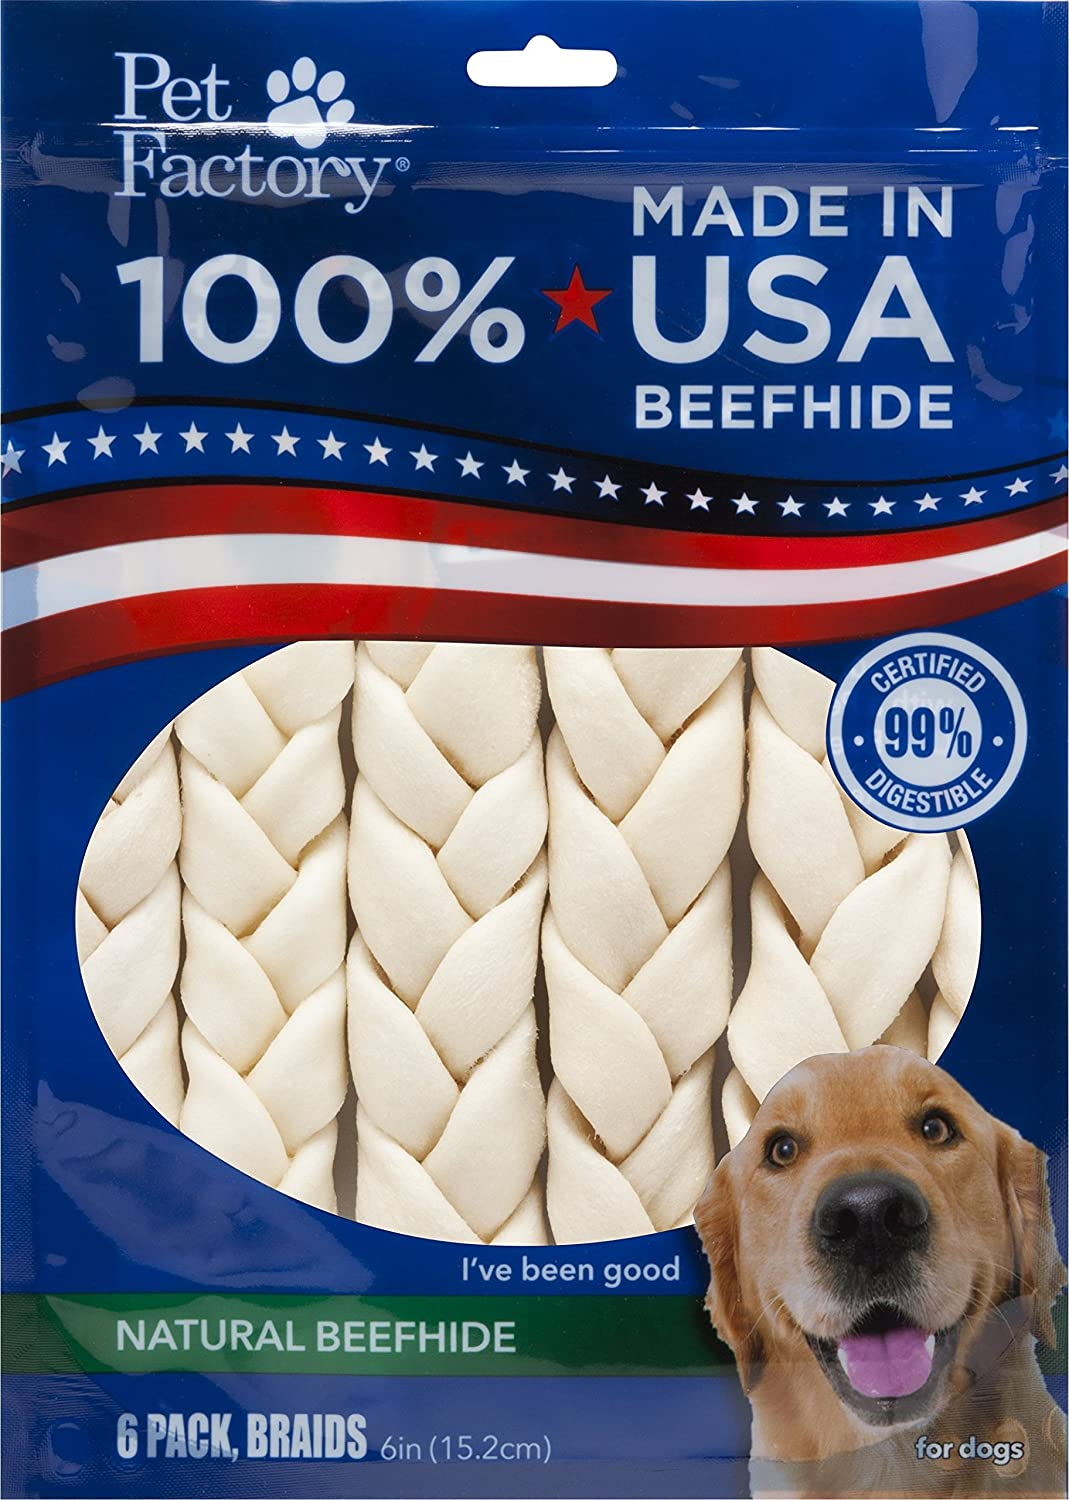 Pet Factory 78106 Beefhide 6 Braided Sicks. 6 Pack. Made in USA